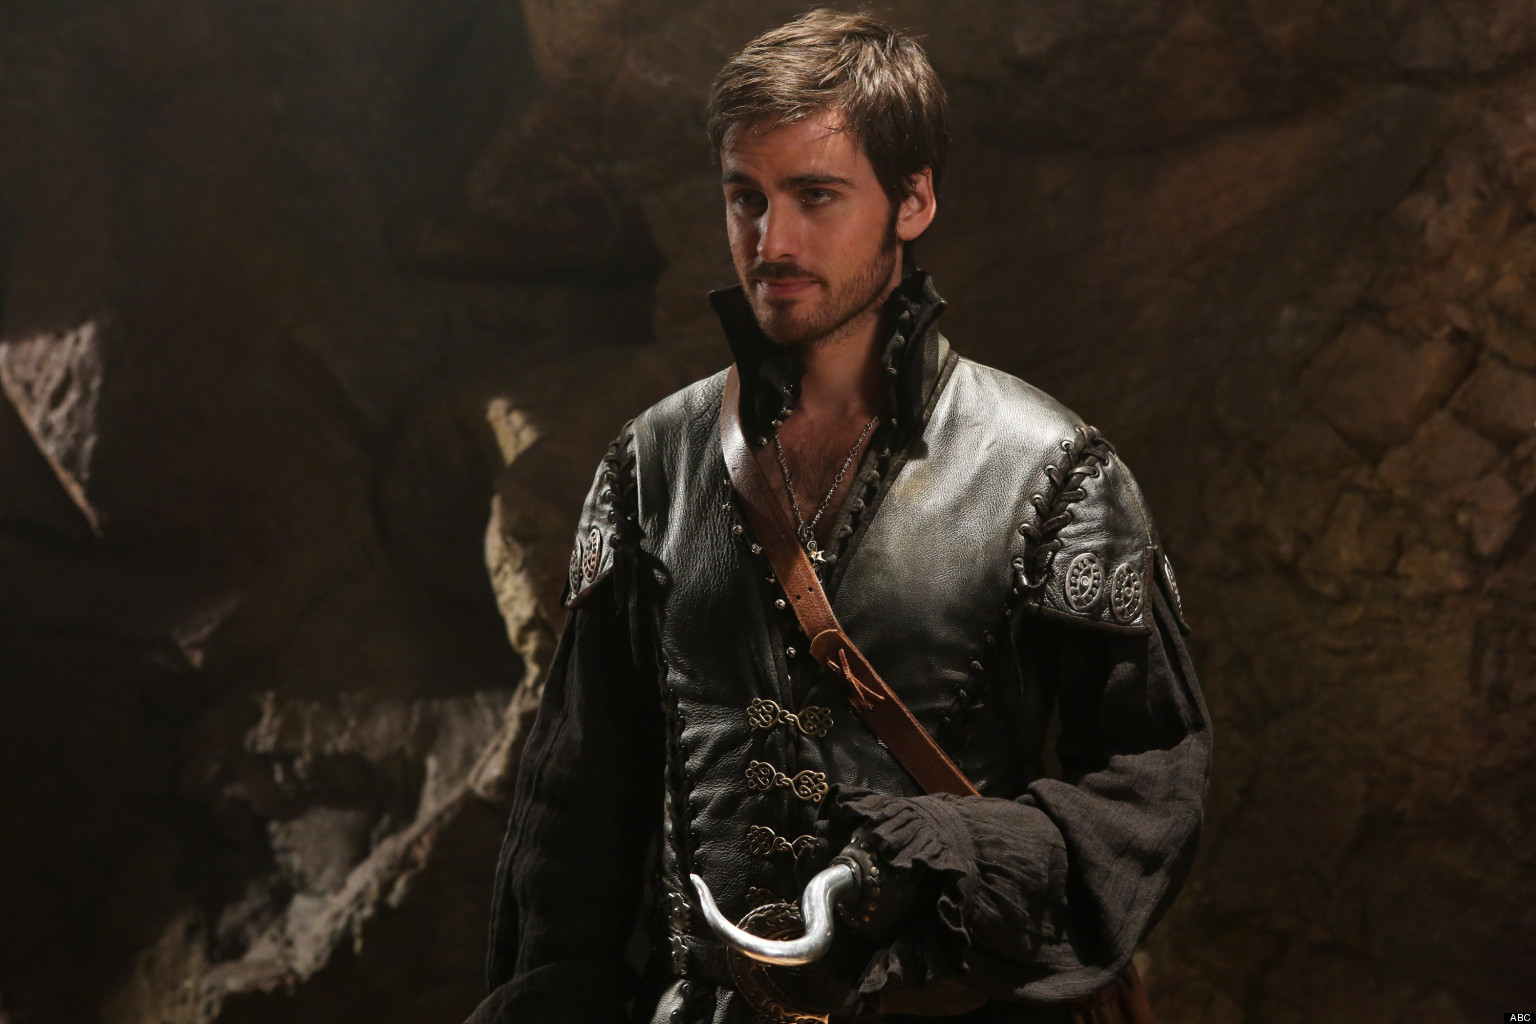 once upon a time 4x03 hook Rocky road is the 69th episode of once upon a time the author of the fairytale book is, while mary margaret is having trouble balancing her duties as leader of storybrooke and mother to young prince neal, and hook begins to suspect that mr gold is still in control of the dagger that calls upon him to be the dark one.